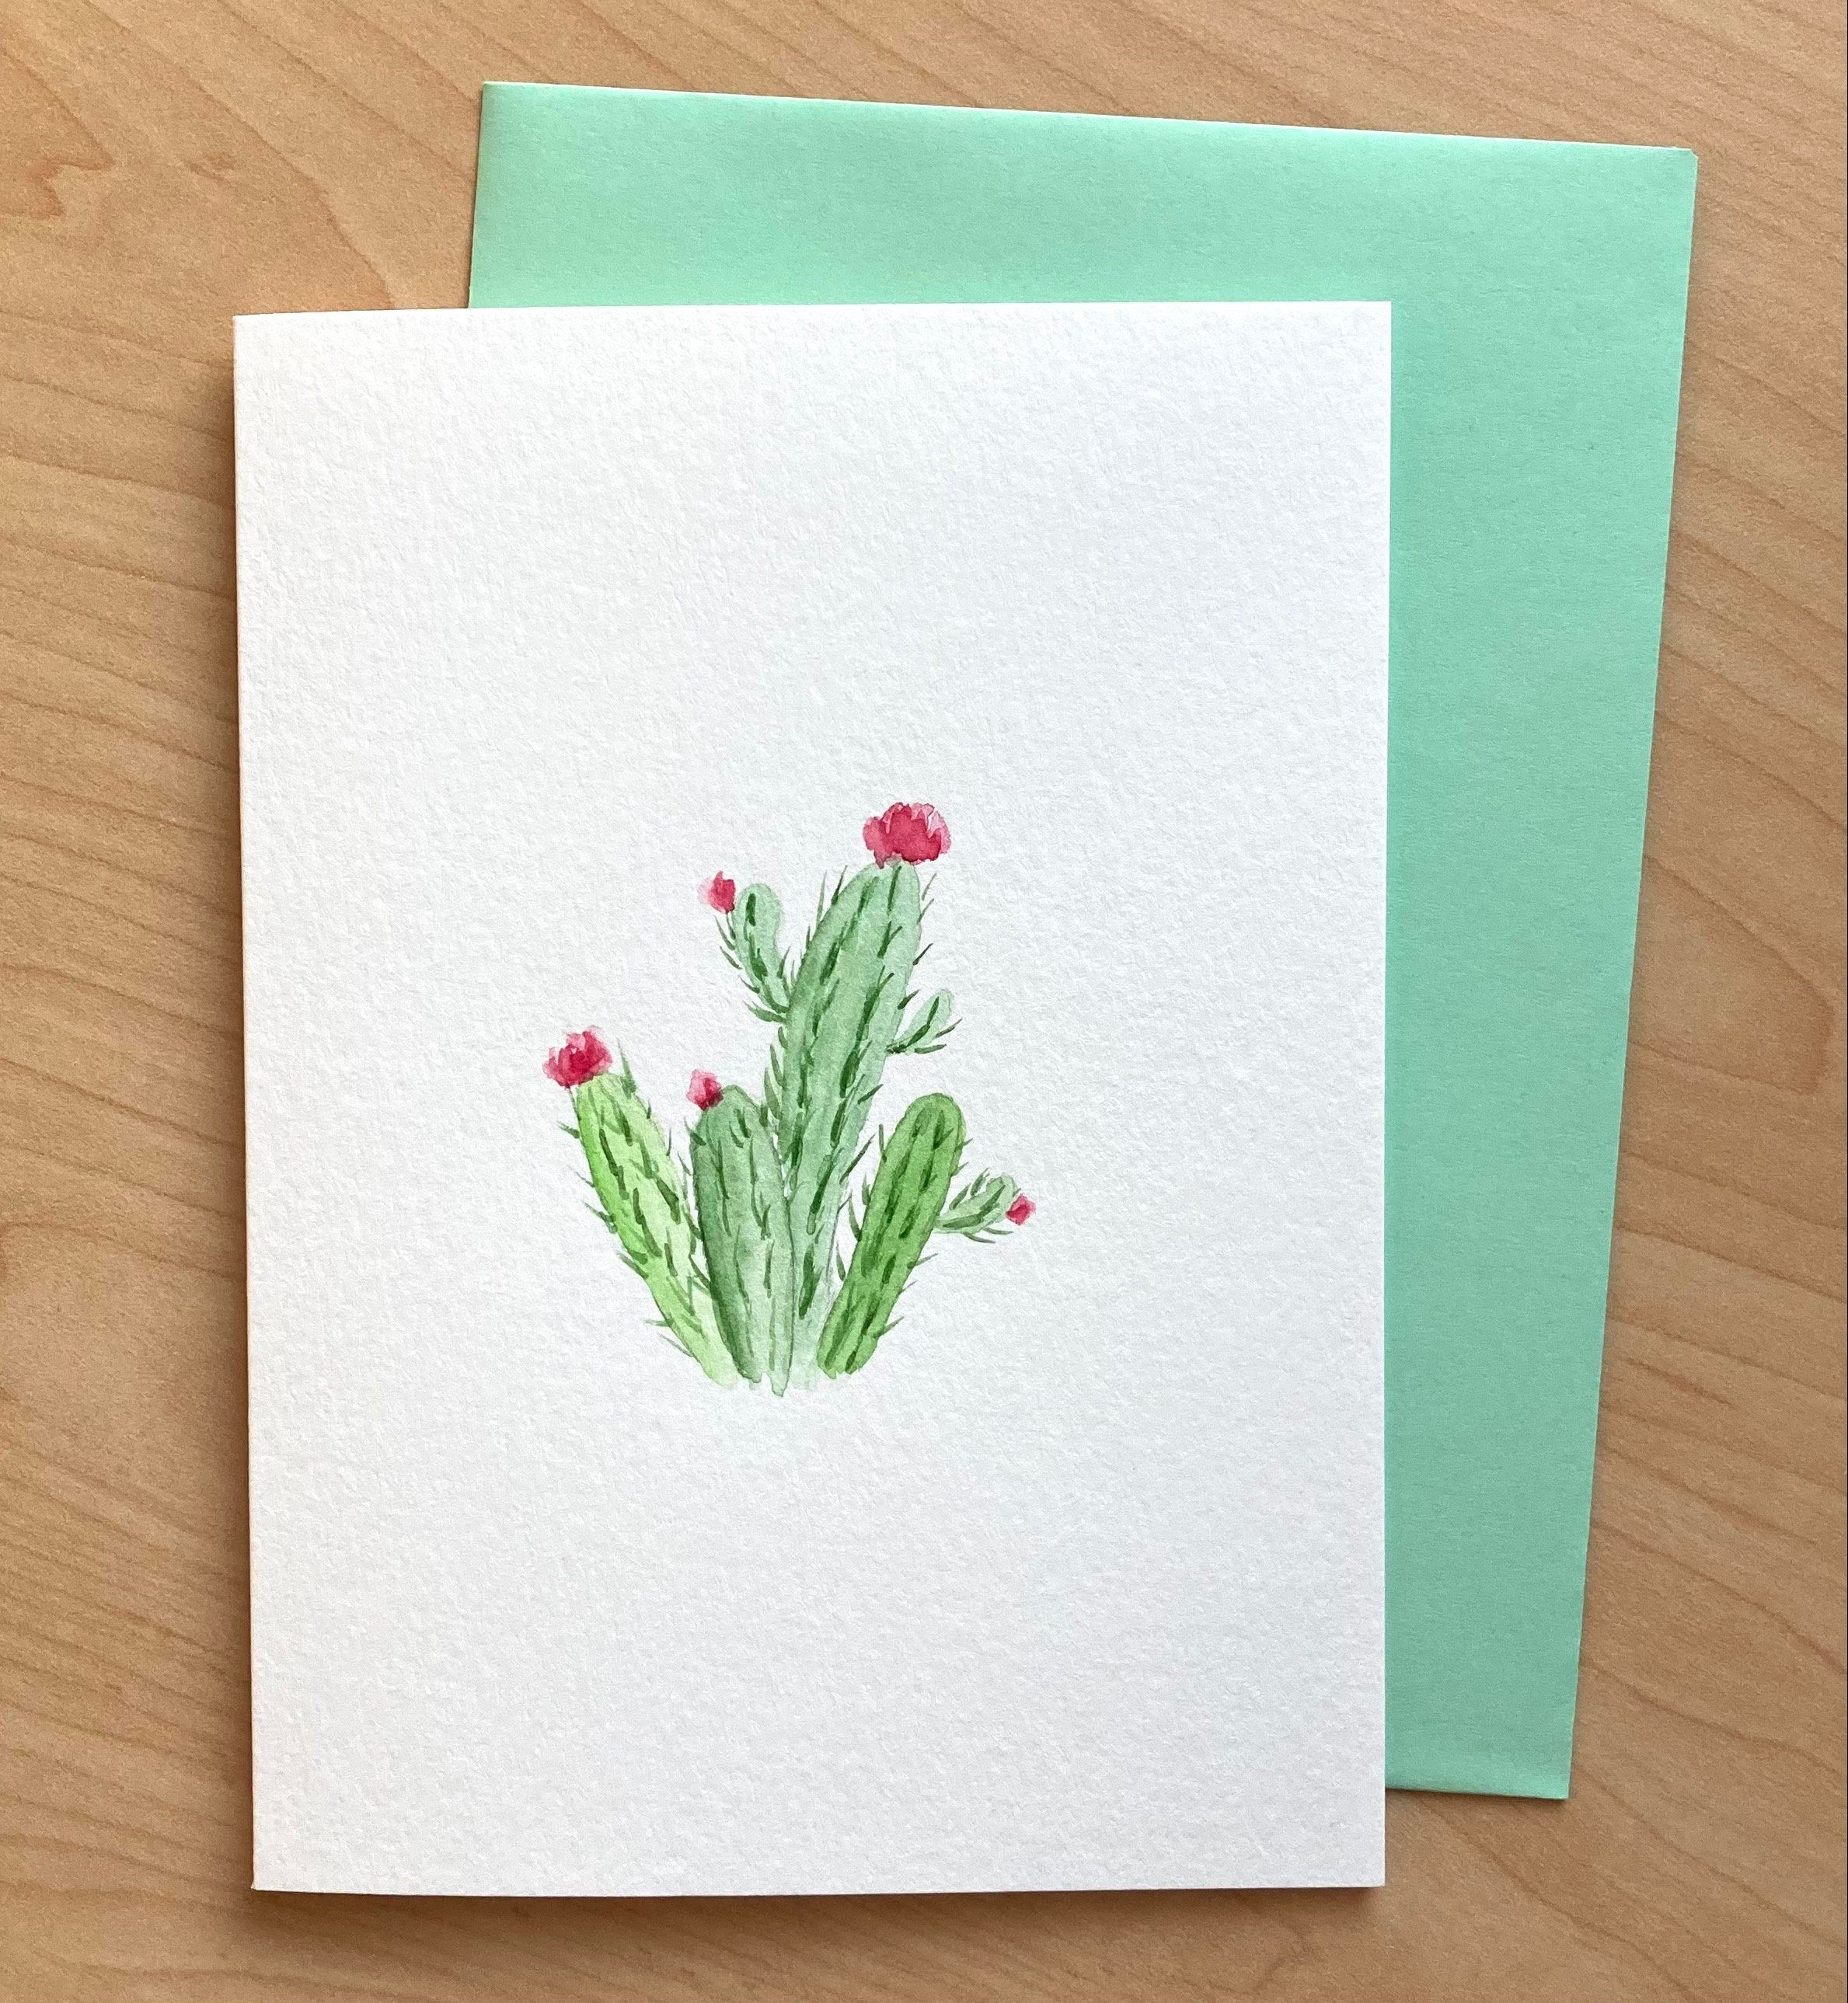 Hand Painted Card Not Print Cactus Blank Card Original Etsy In 2021 Hand Painted Card Paint Cards Watercolor Cards